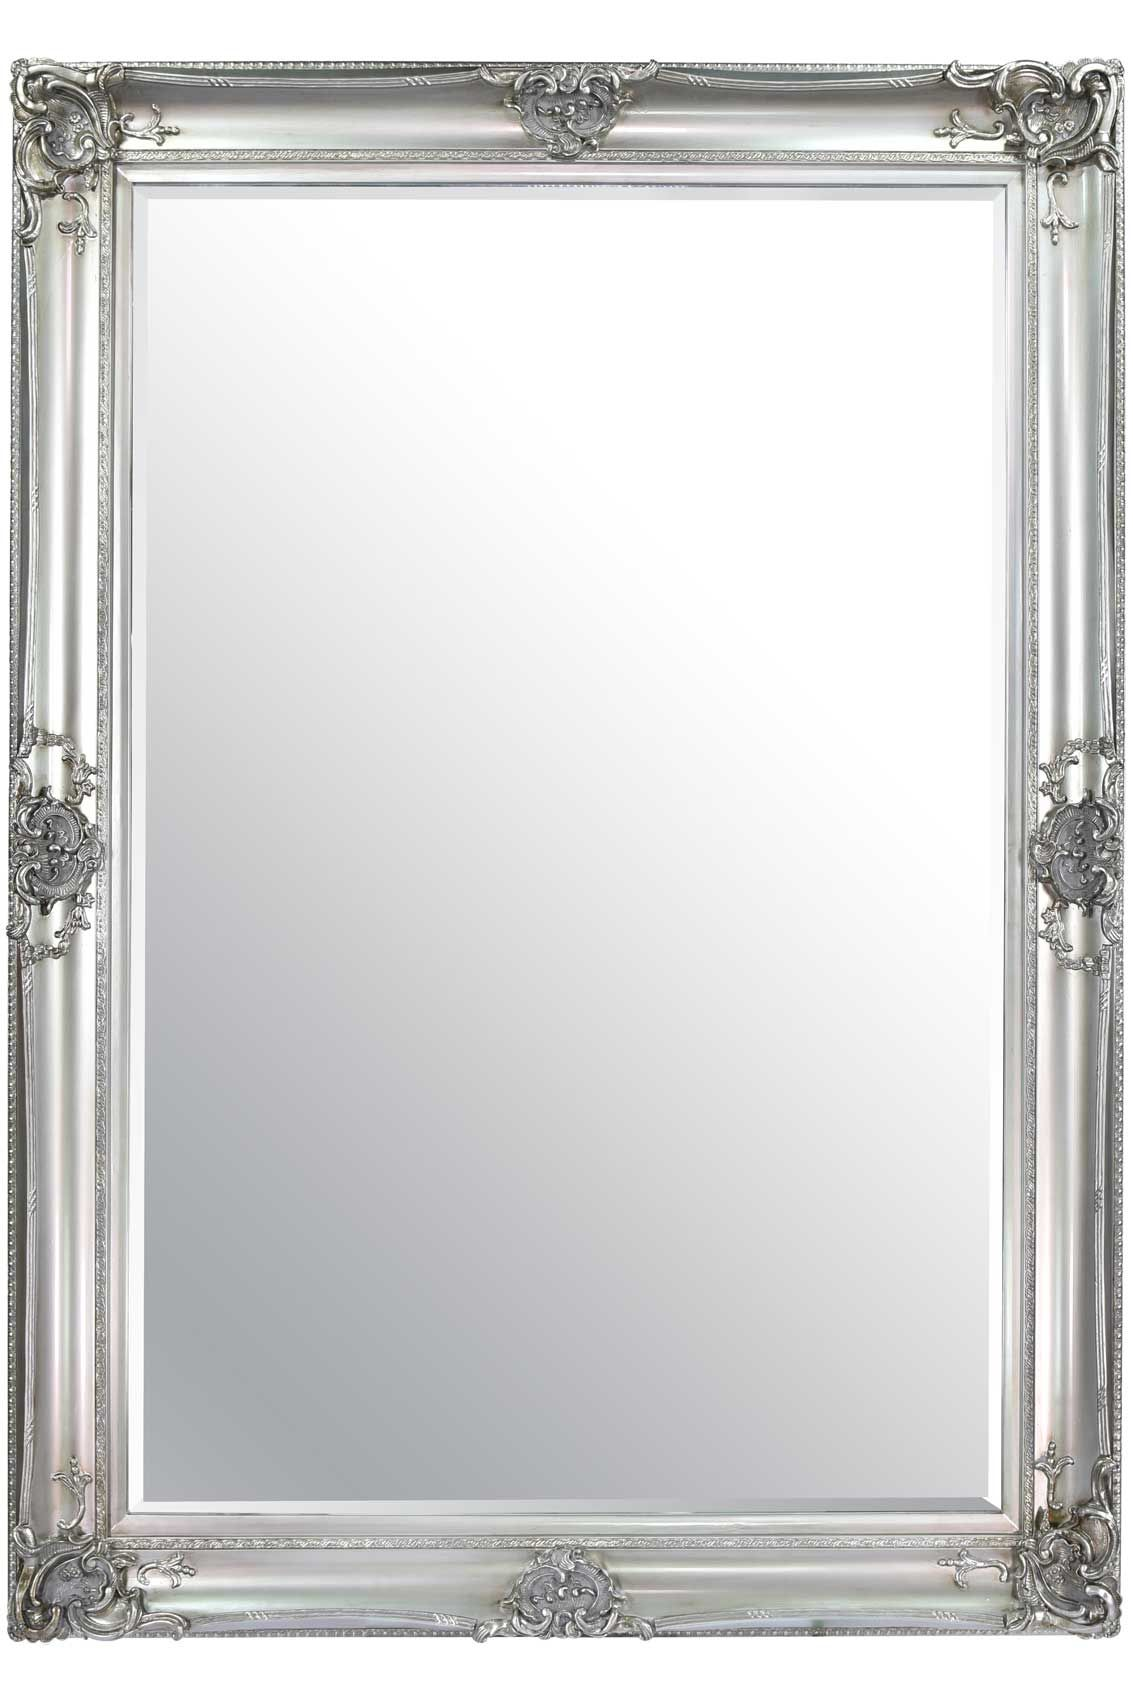 Honiton Extra Large Silver Mirror 213x152cm Silver Framed Mirror Mirror Silver Mirrors